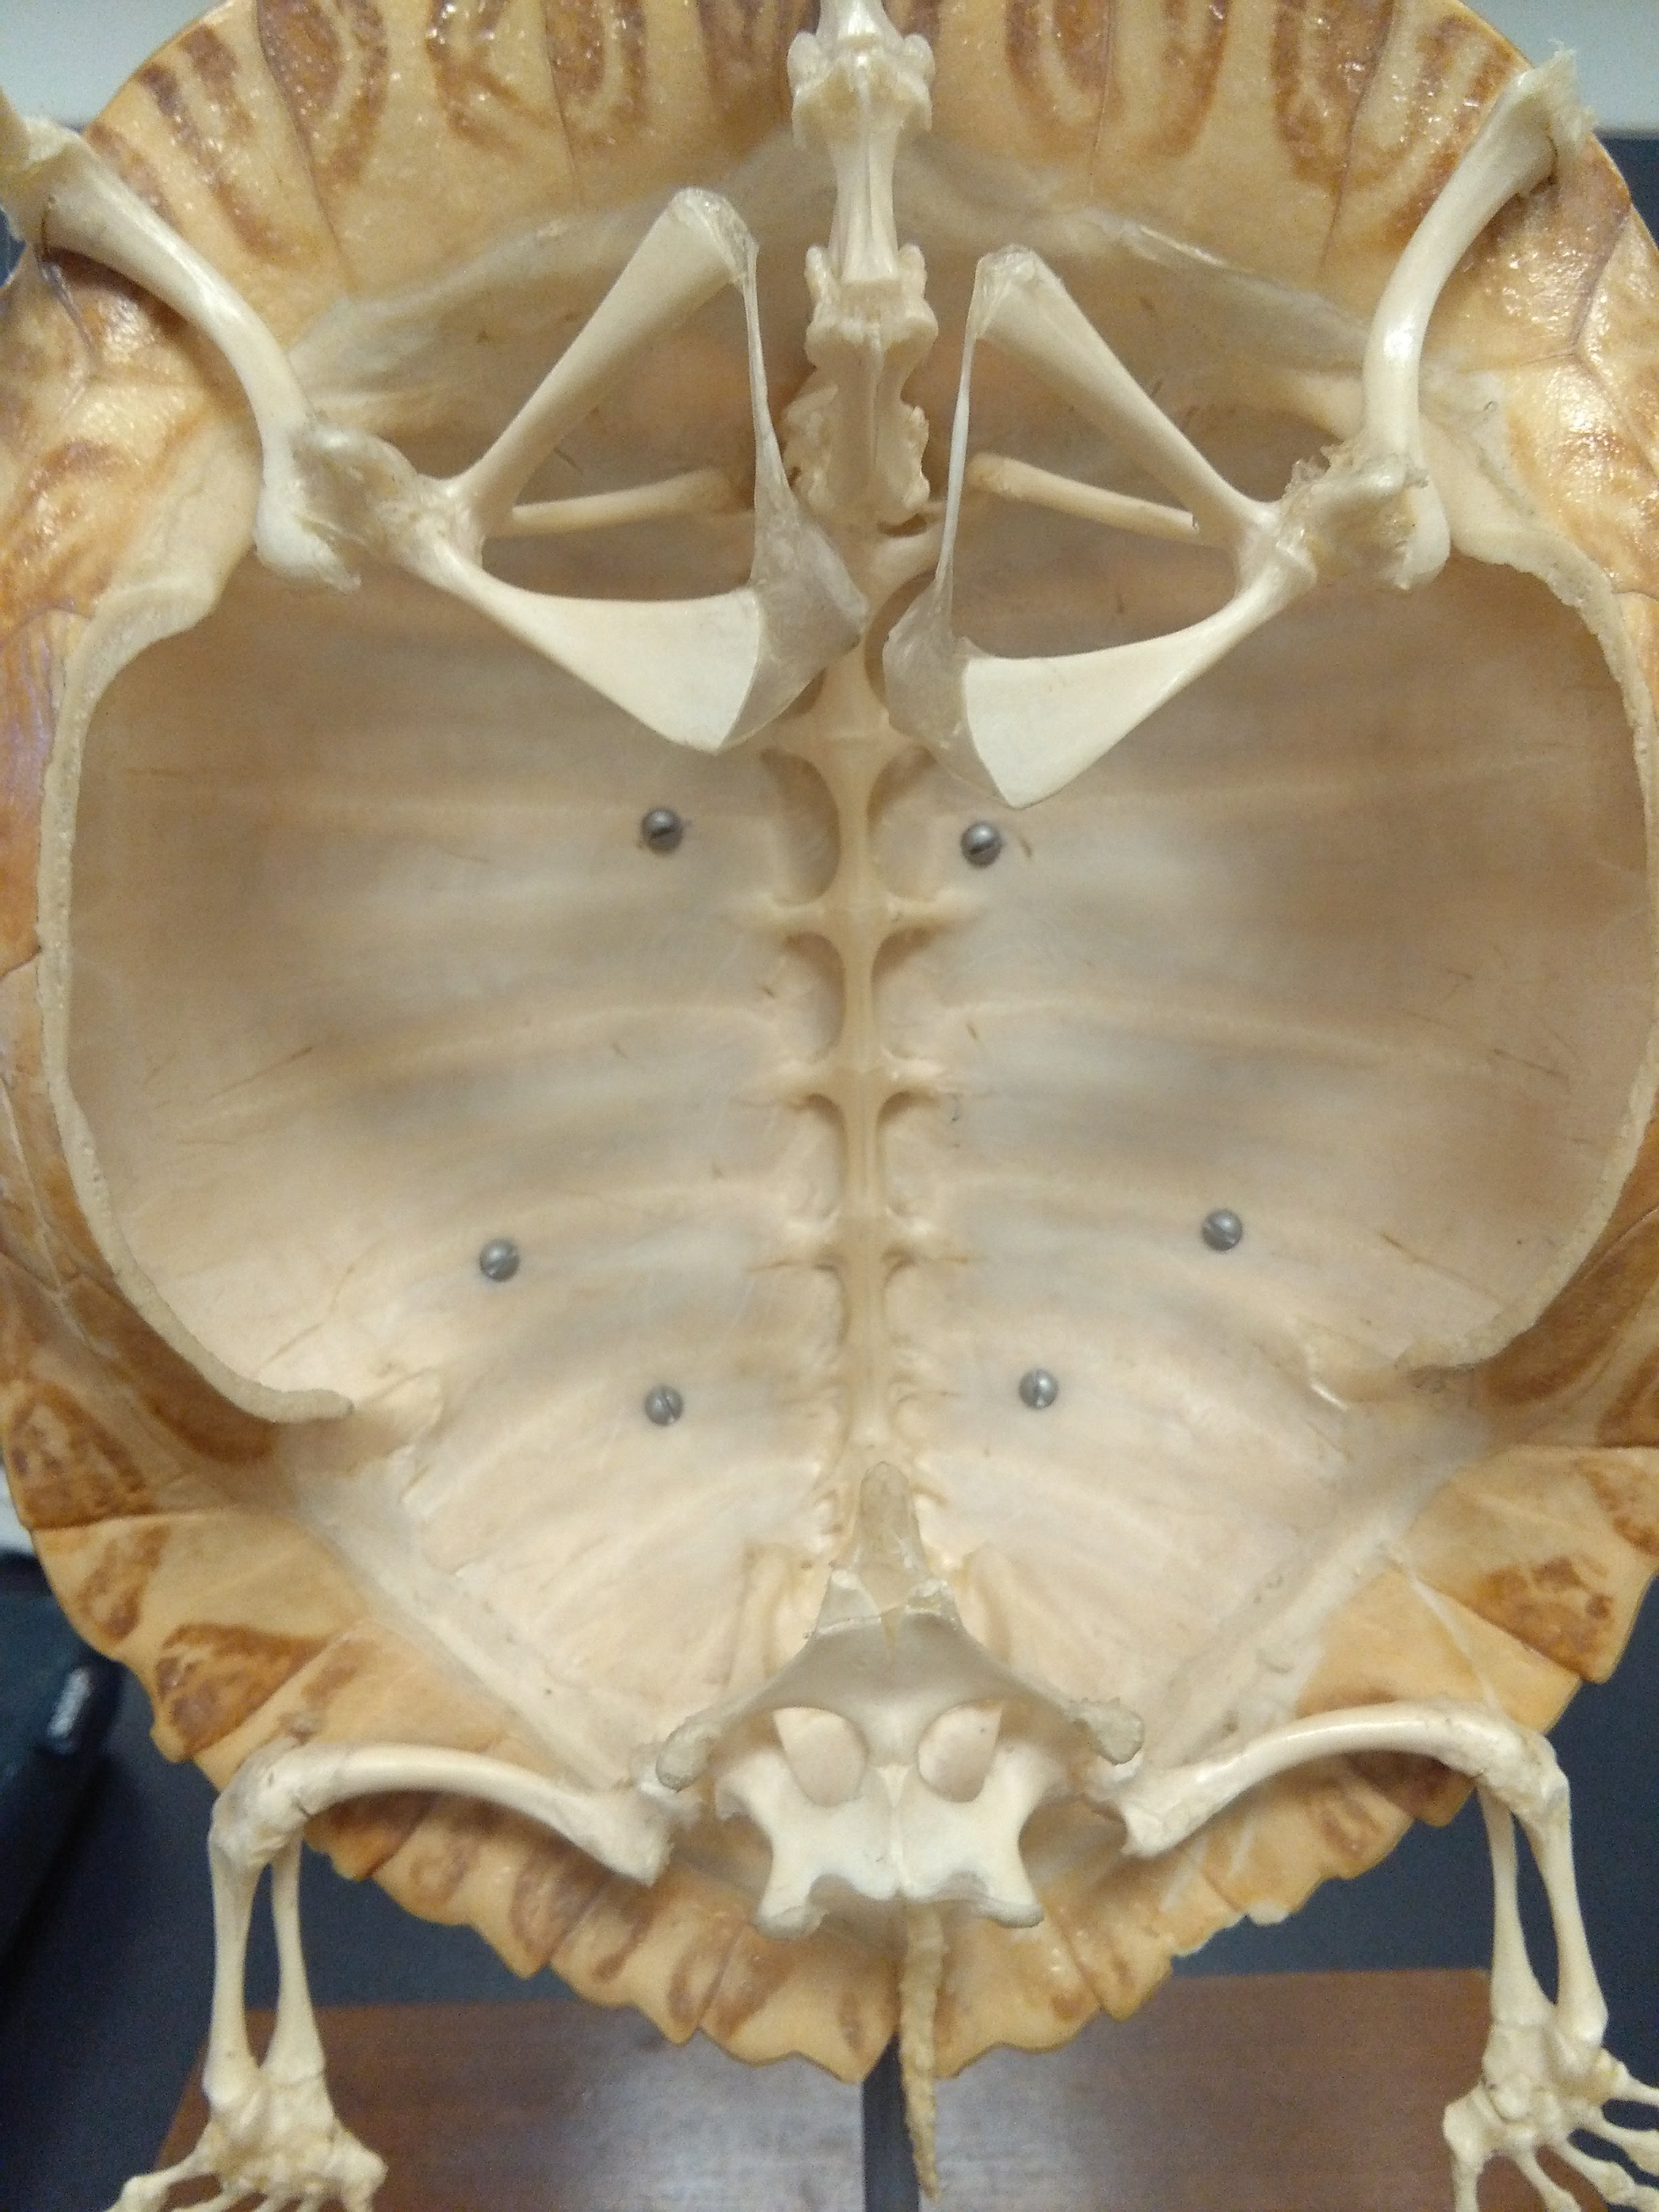 File:Turtle Carapace with Vertebrae and Girdles.jpg - Wikimedia Commons